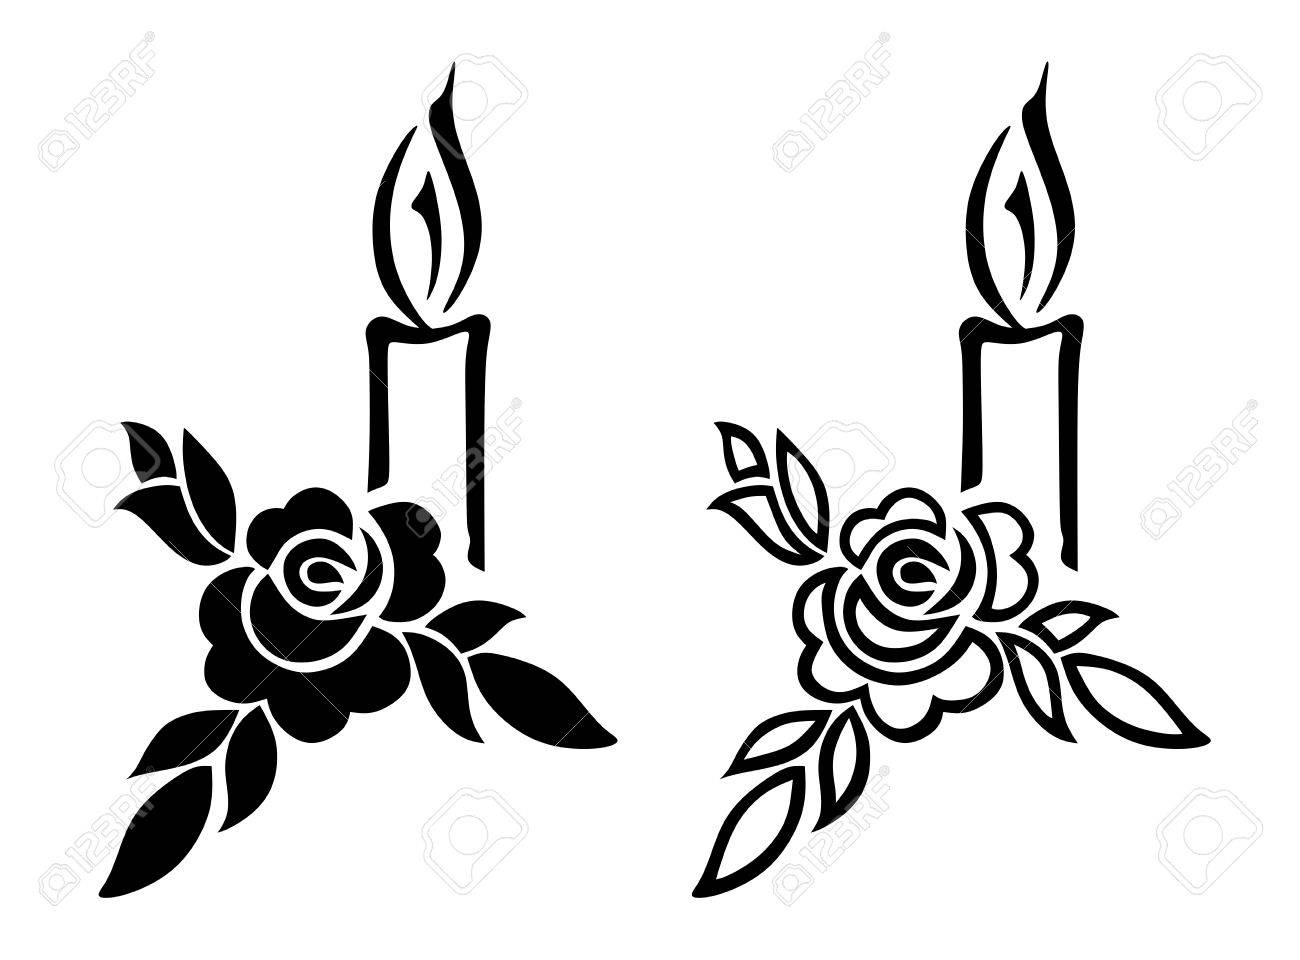 illustration of funerary decoration with rose and candle Stock Photo - 23239388